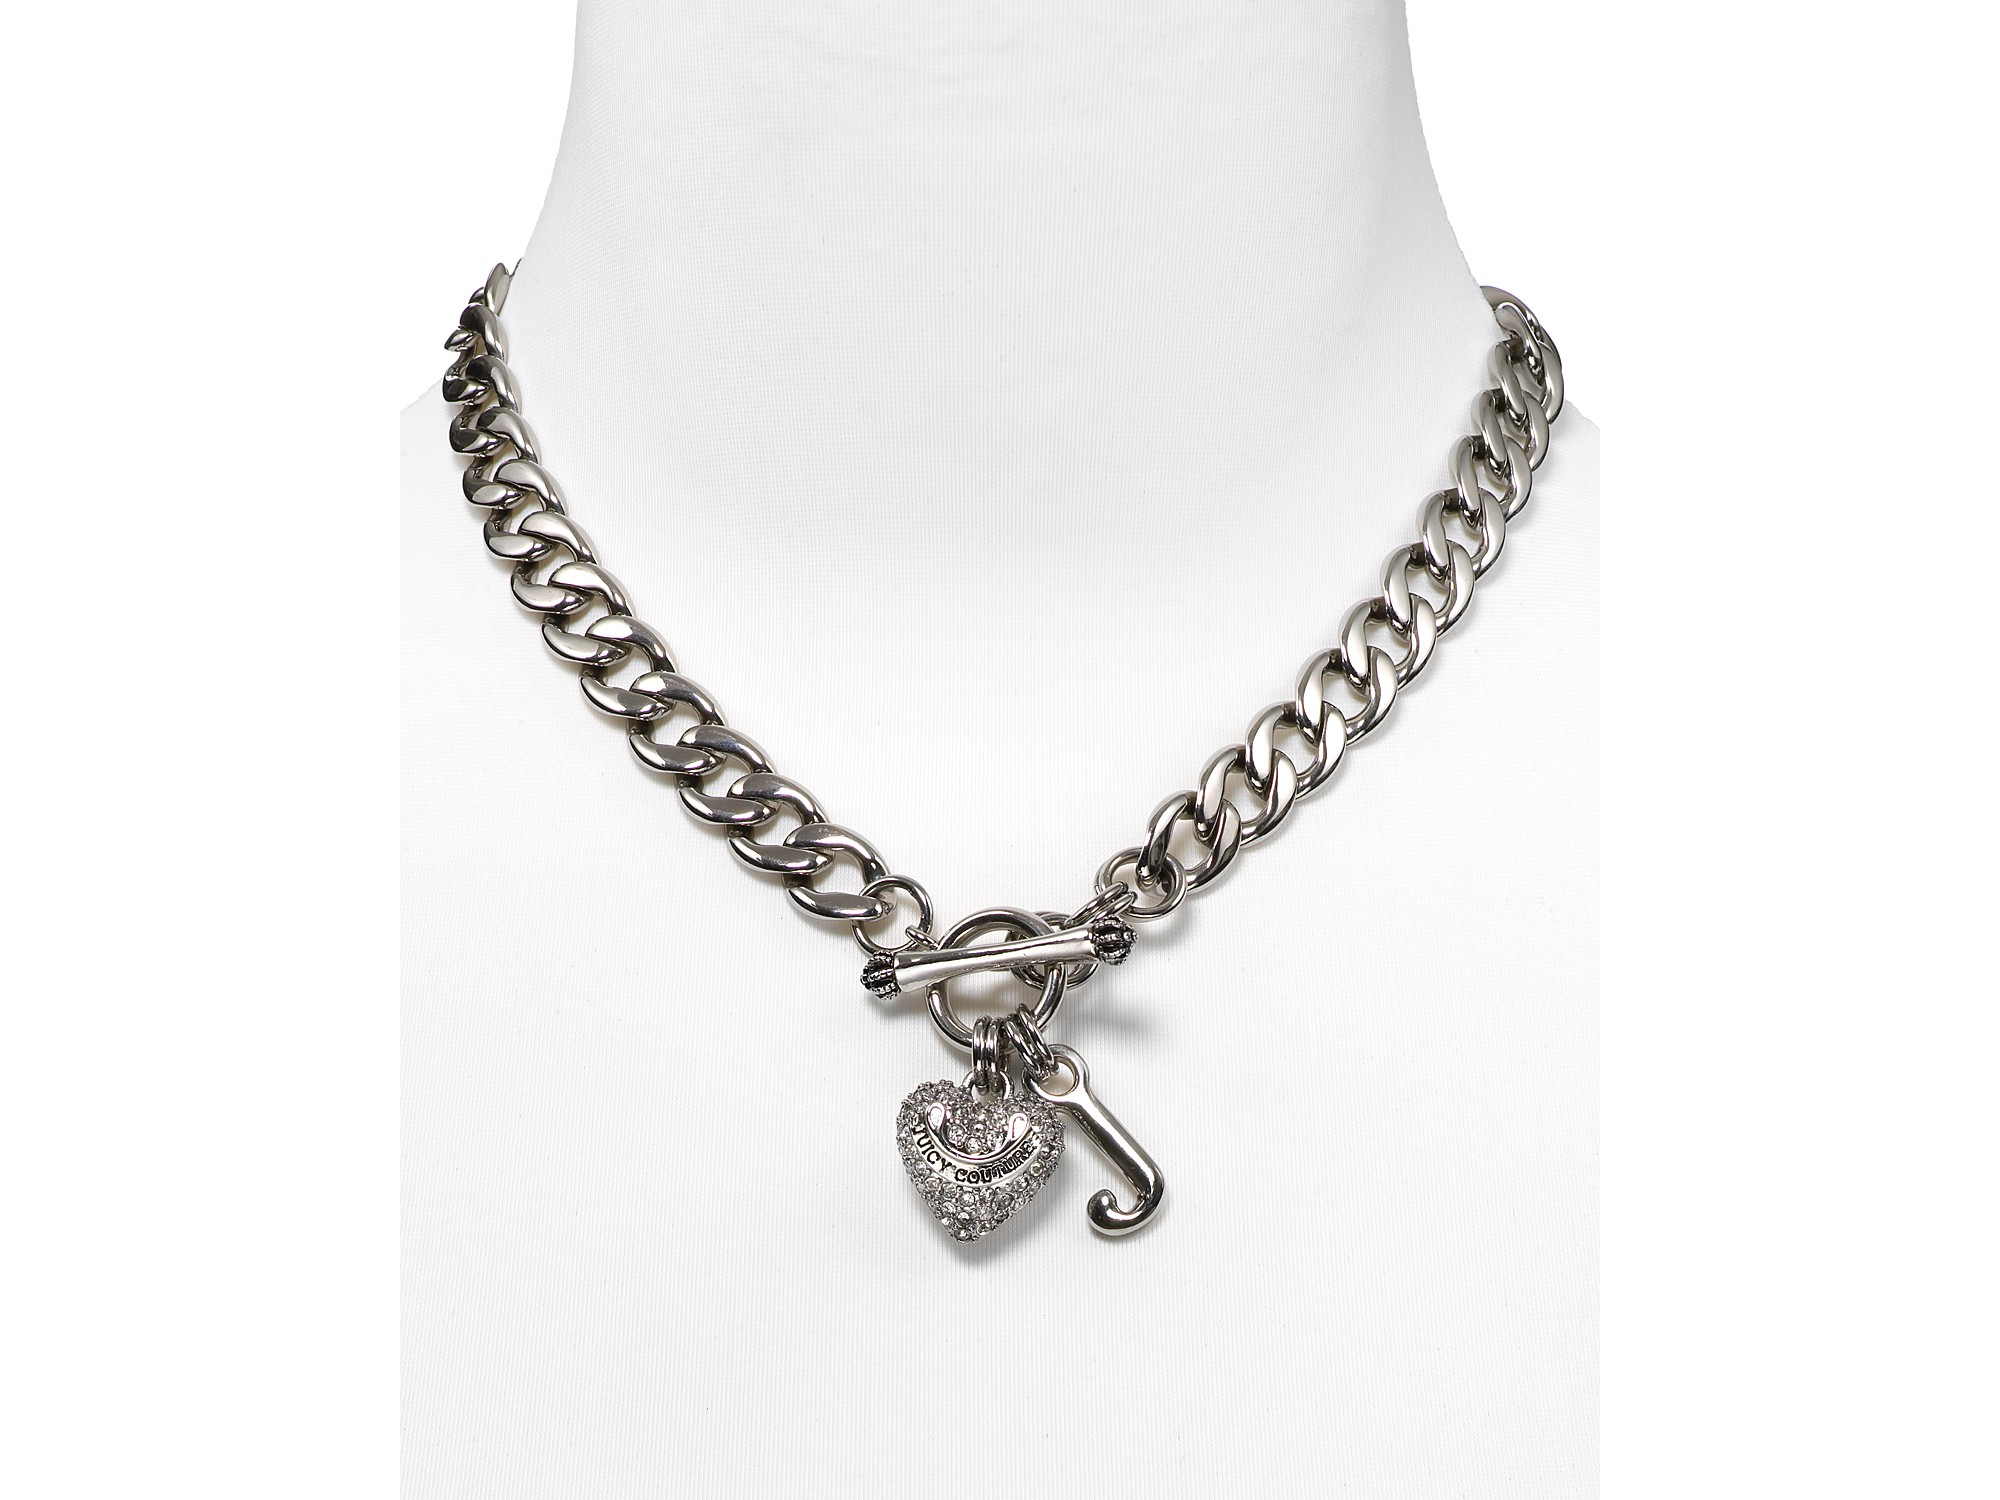 Lyst - Juicy Couture Pavé Heart Starter Charm Necklace in Metallic